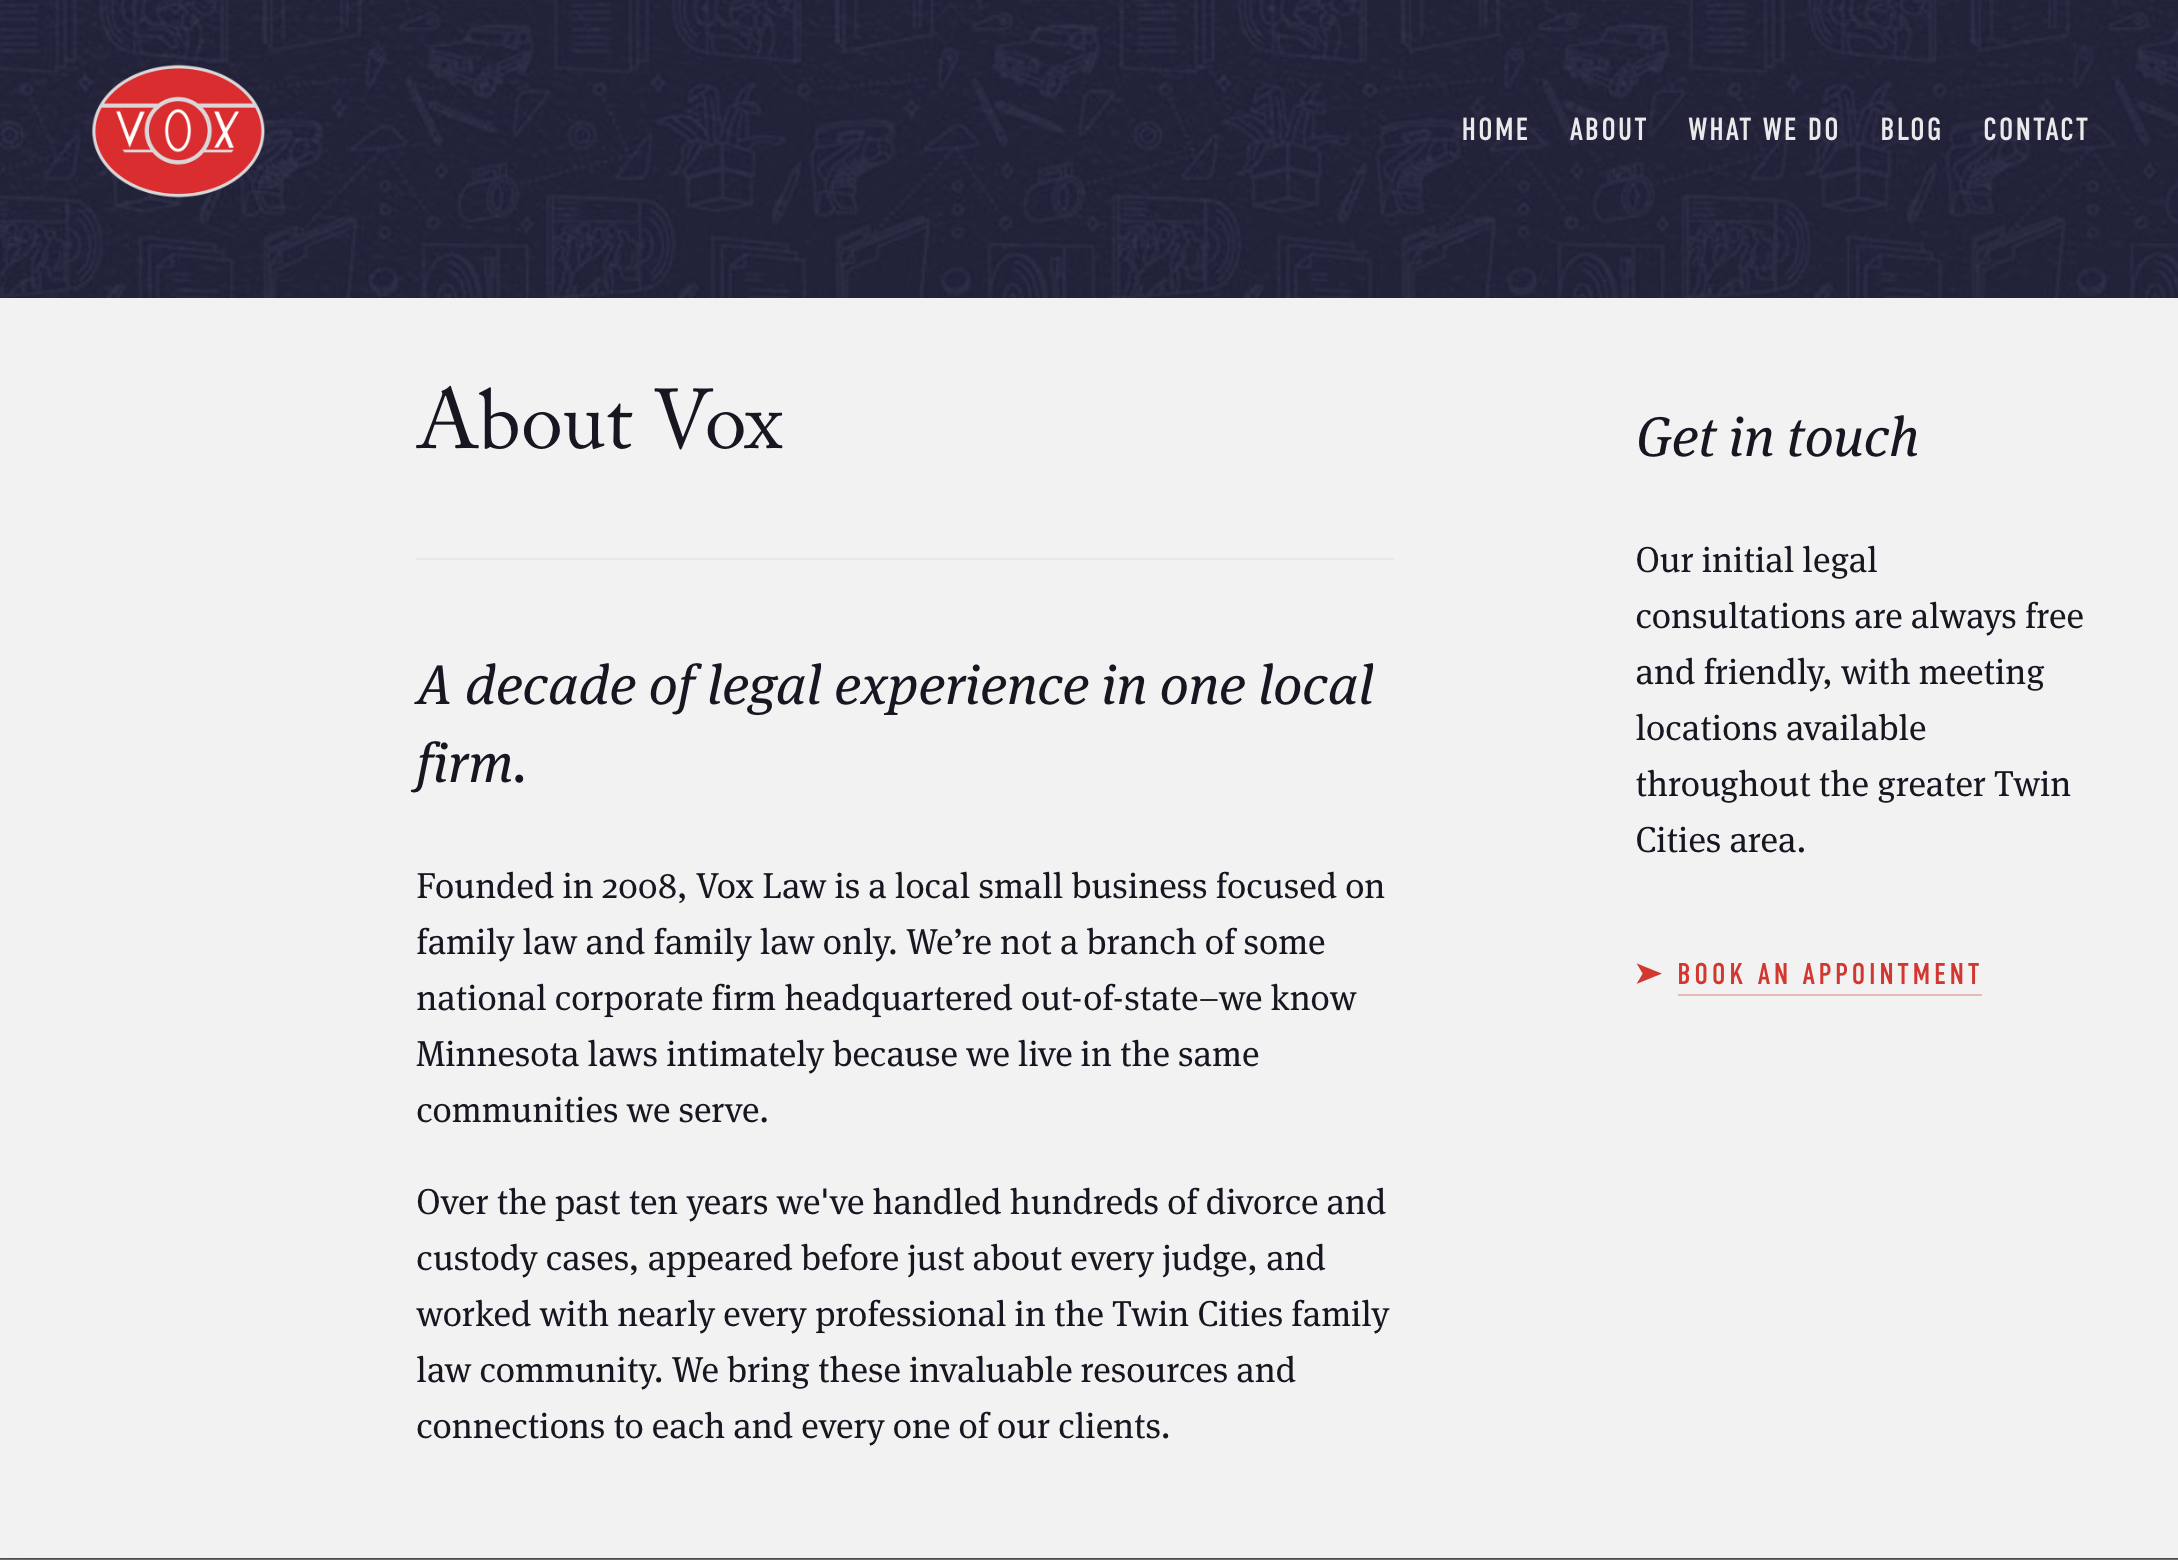 About page copy for Vox Law.